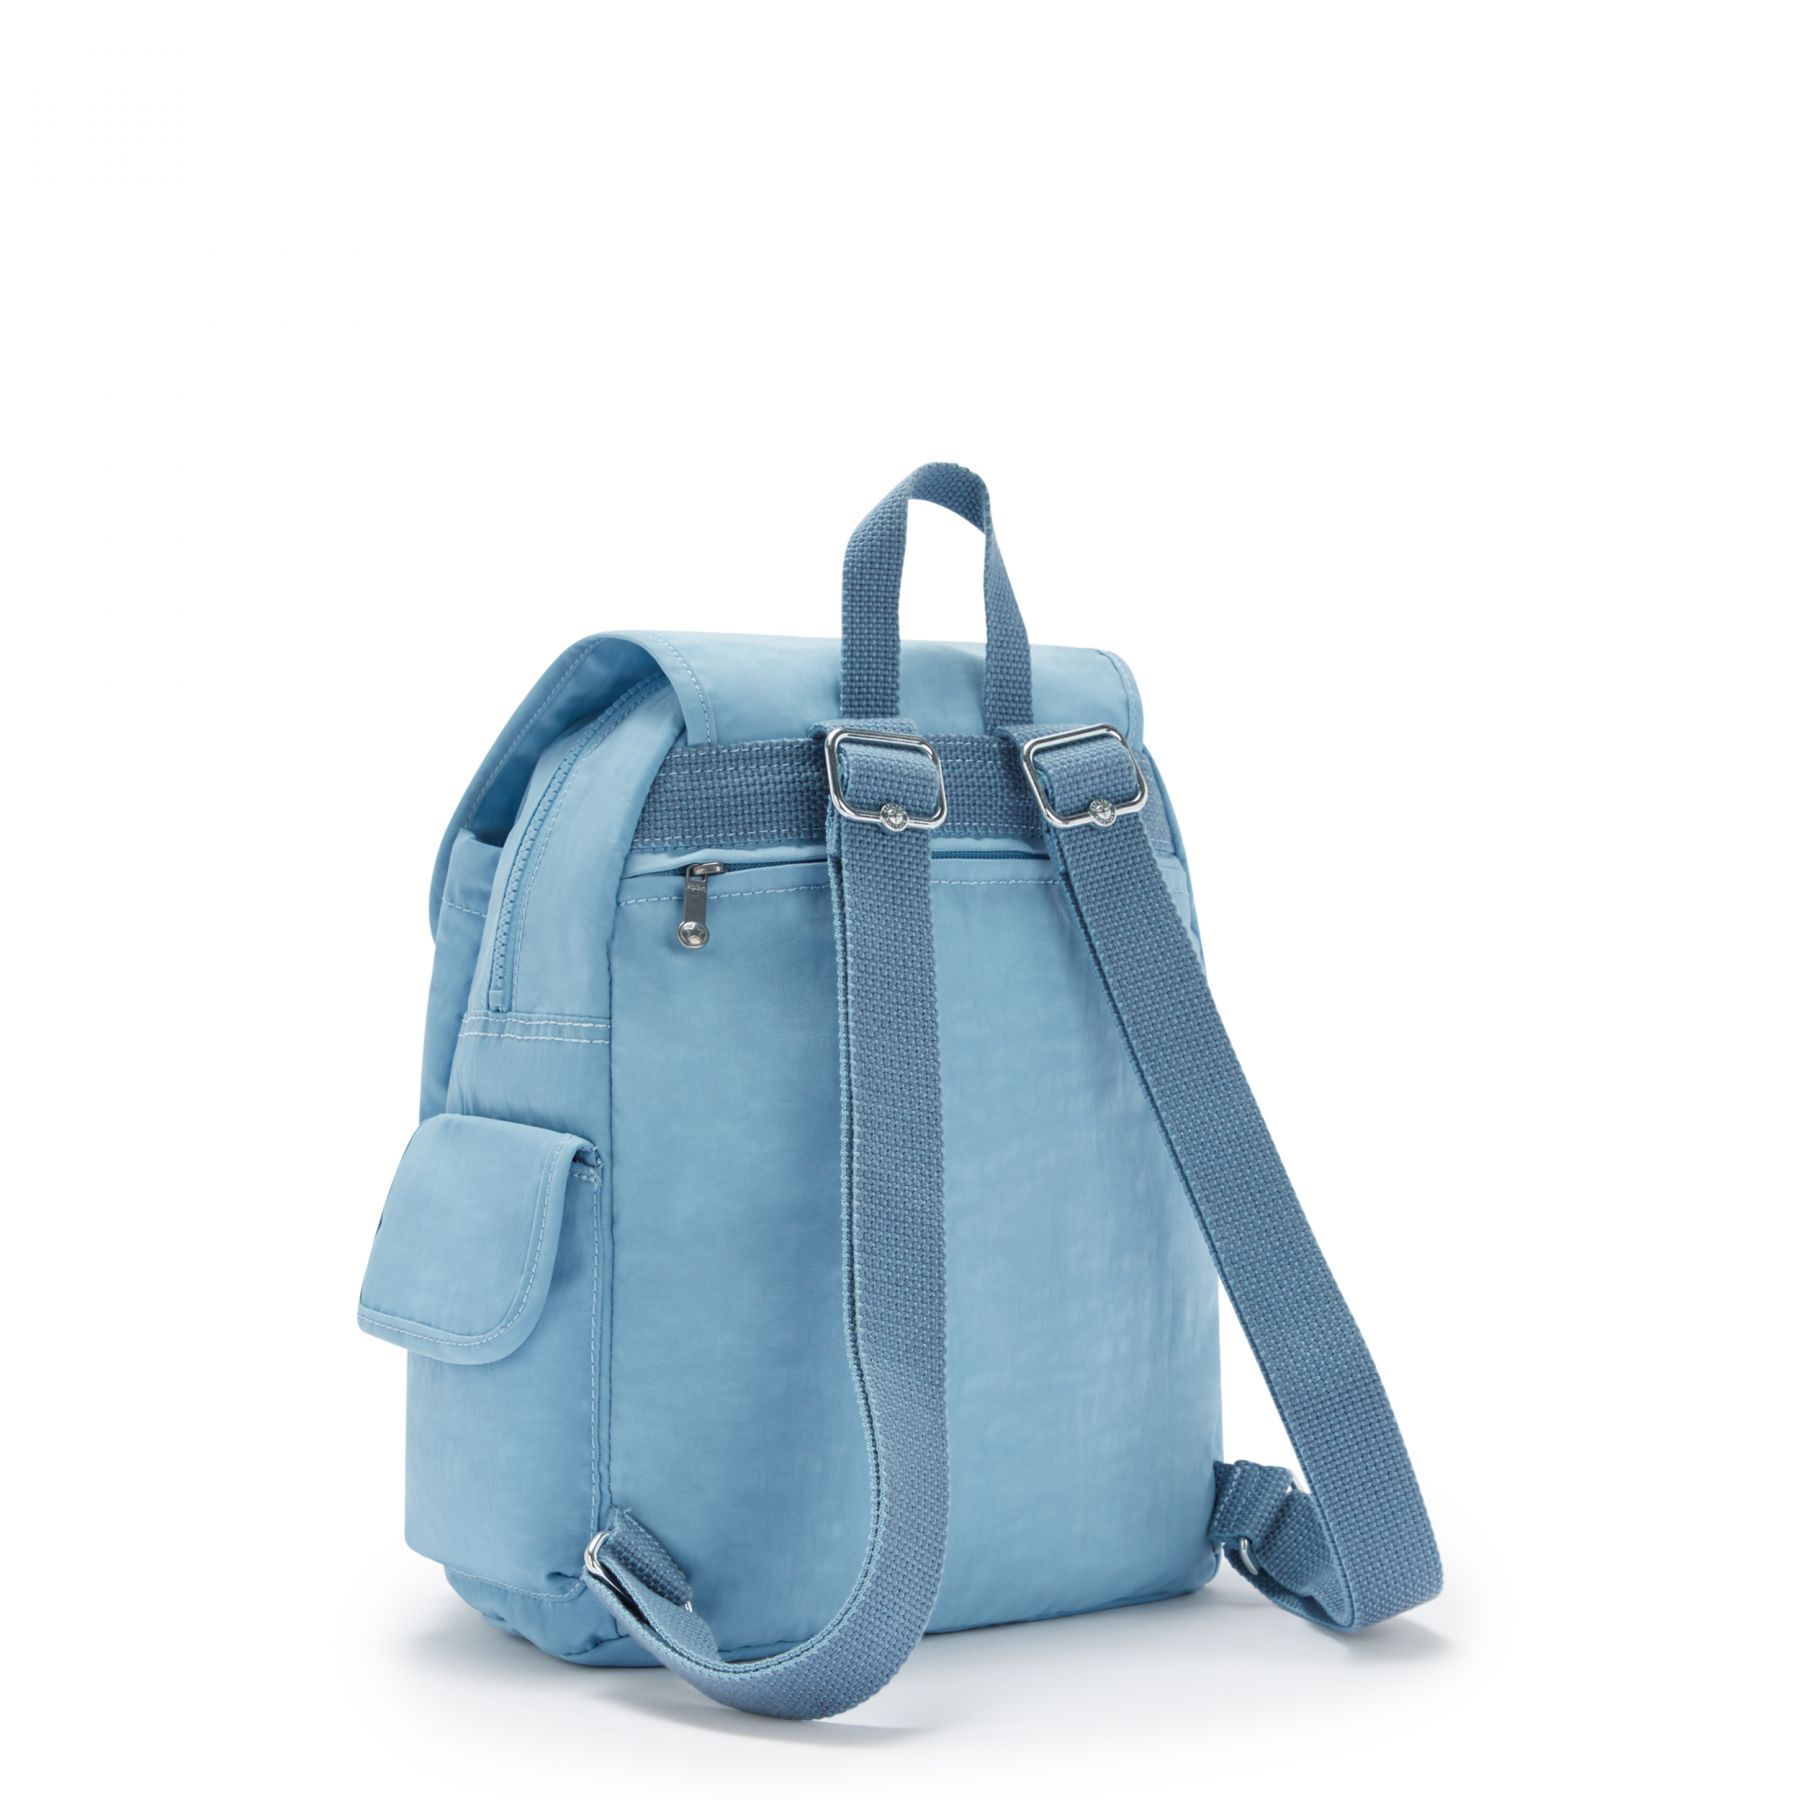 CITY PACK S NEW IN by Kipling